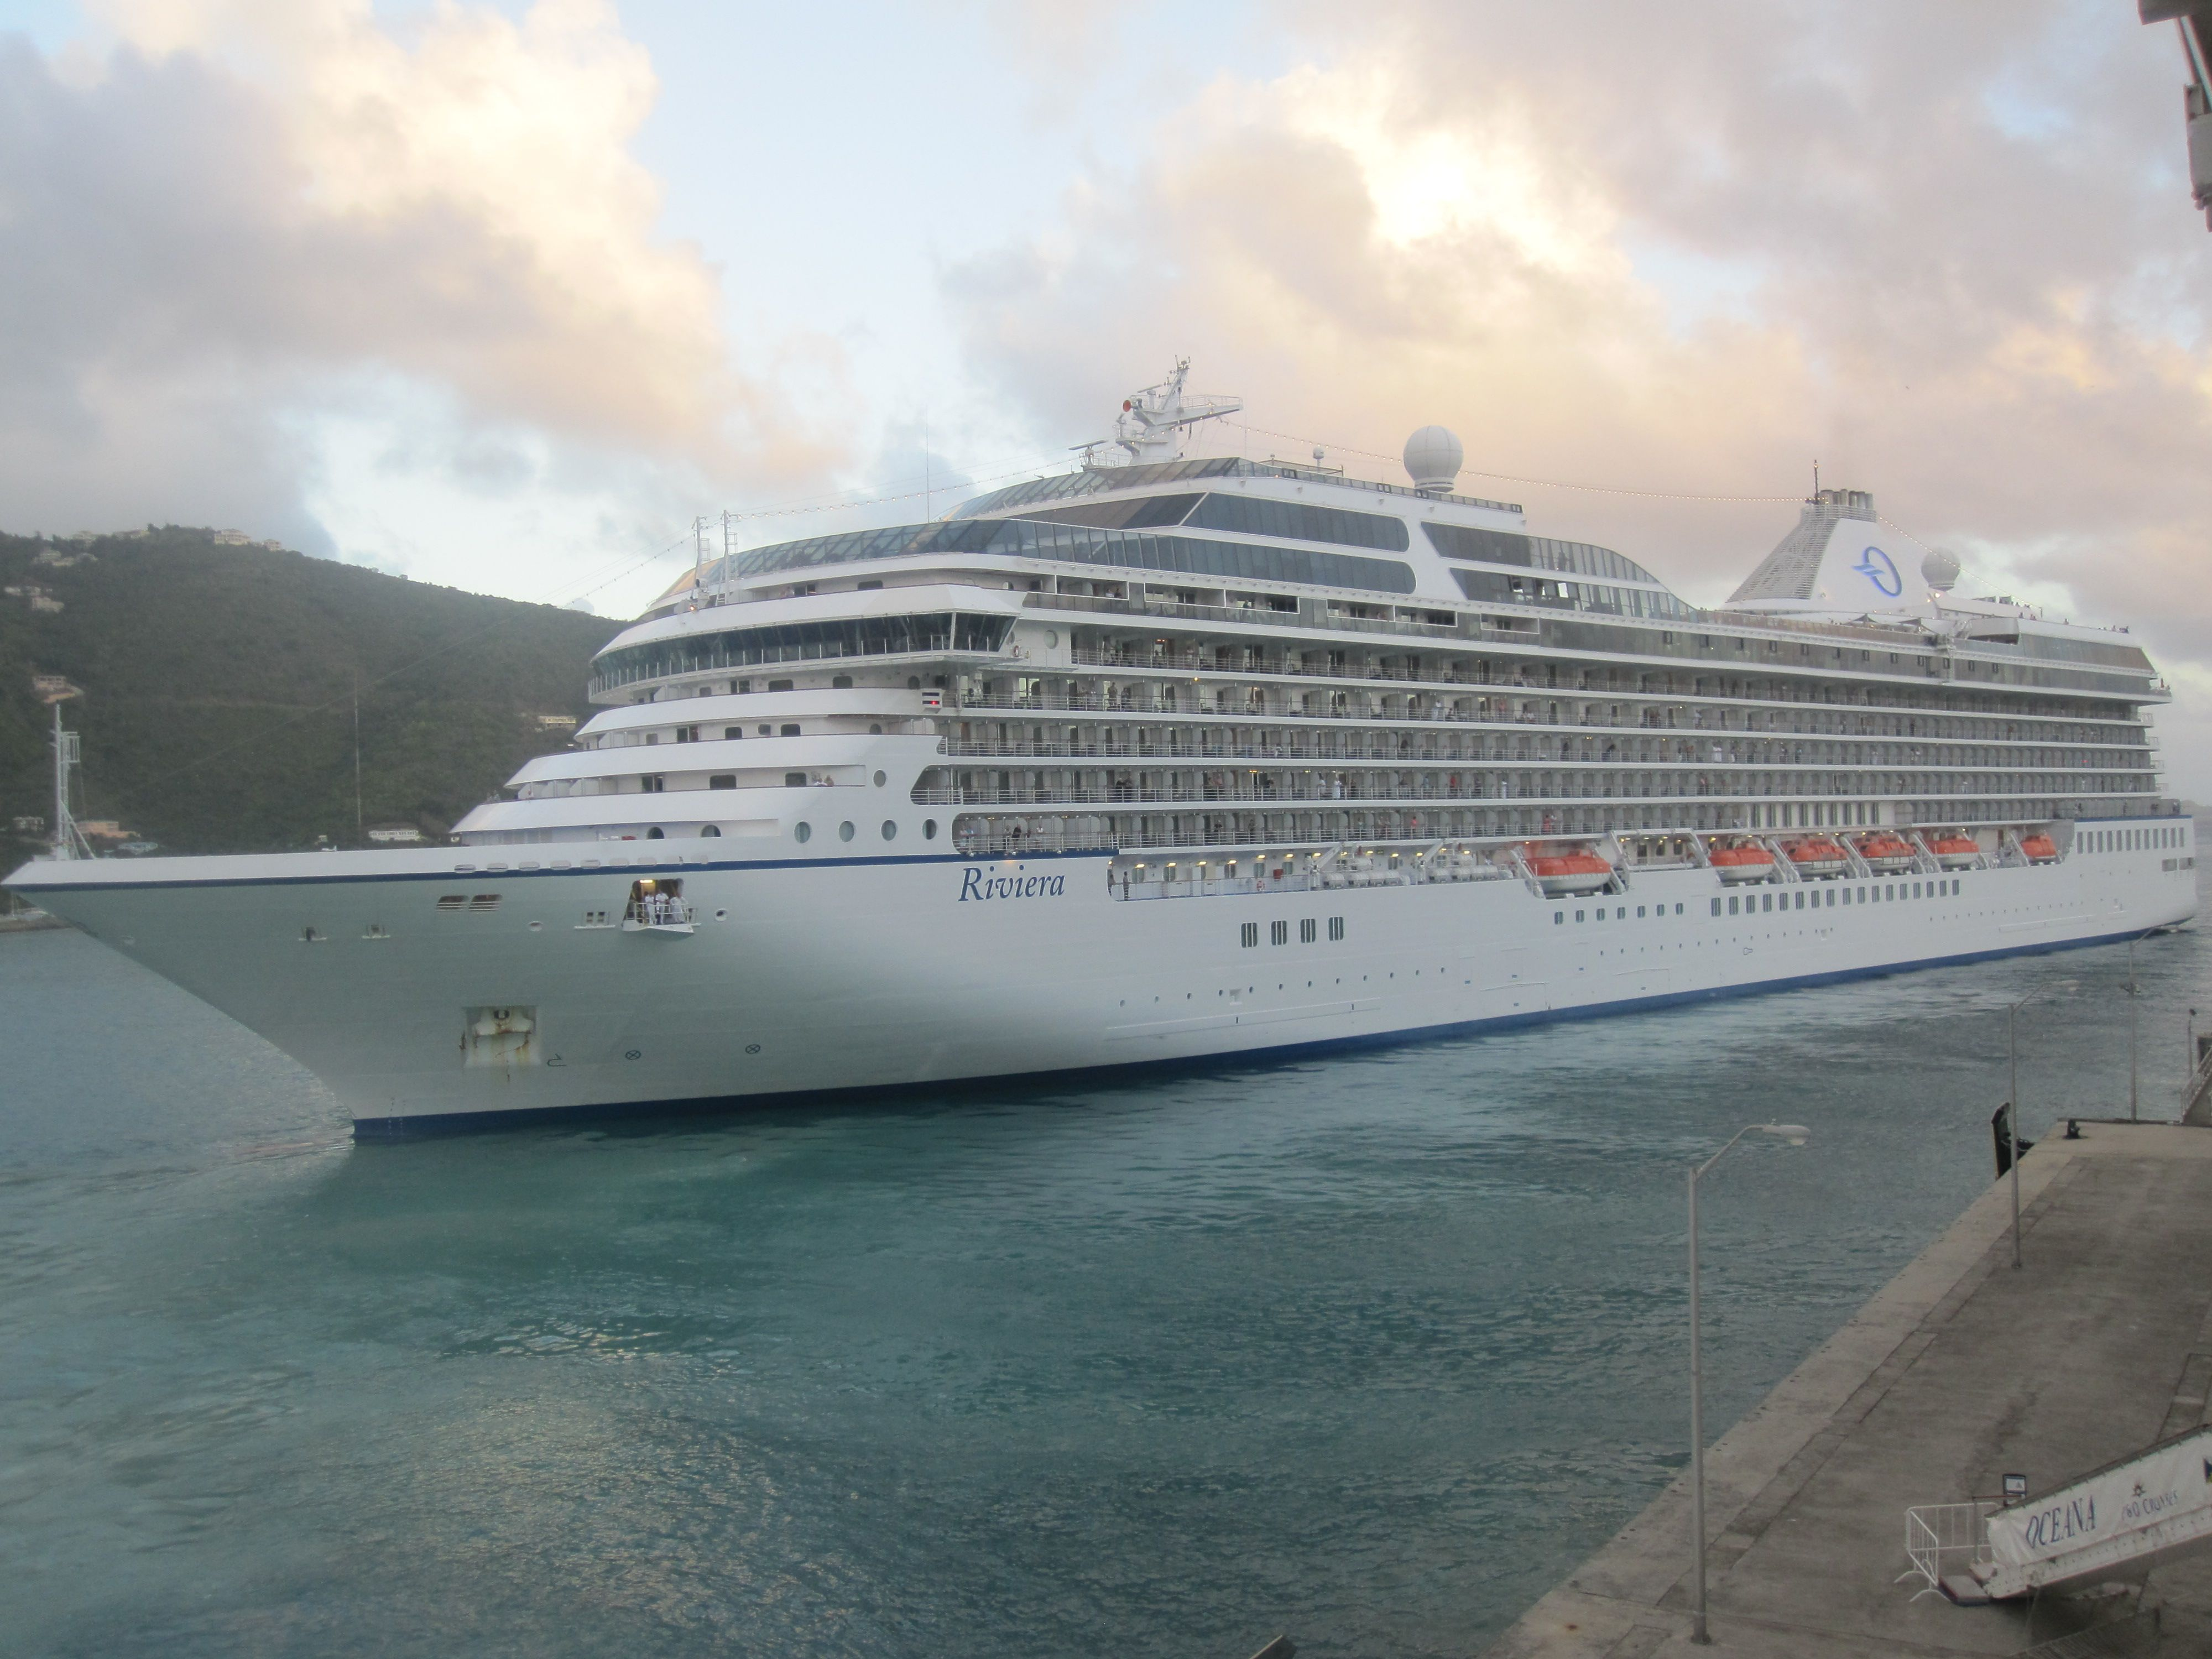 Another cruise line sets sail for cuba hopes travelgumbo another cruise line sets sail for cuba hopes travelgumbo travelgumbo pinterest cruises cruise ships and funchal baanklon Gallery